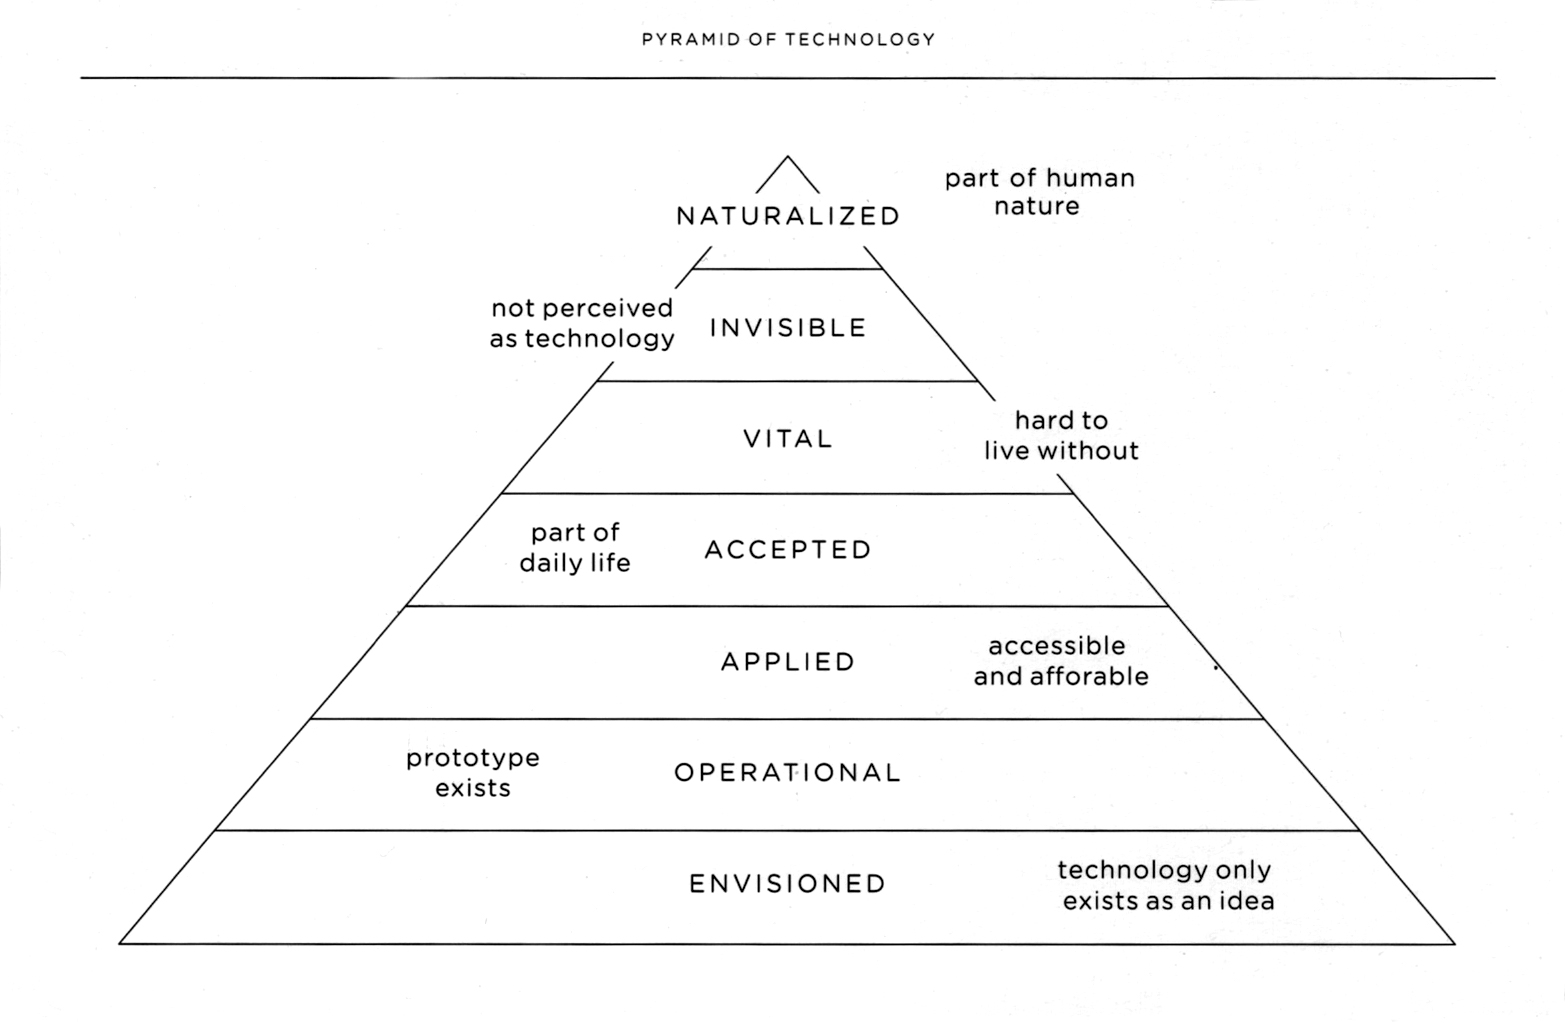 Pyramid of Technology by Next Nature